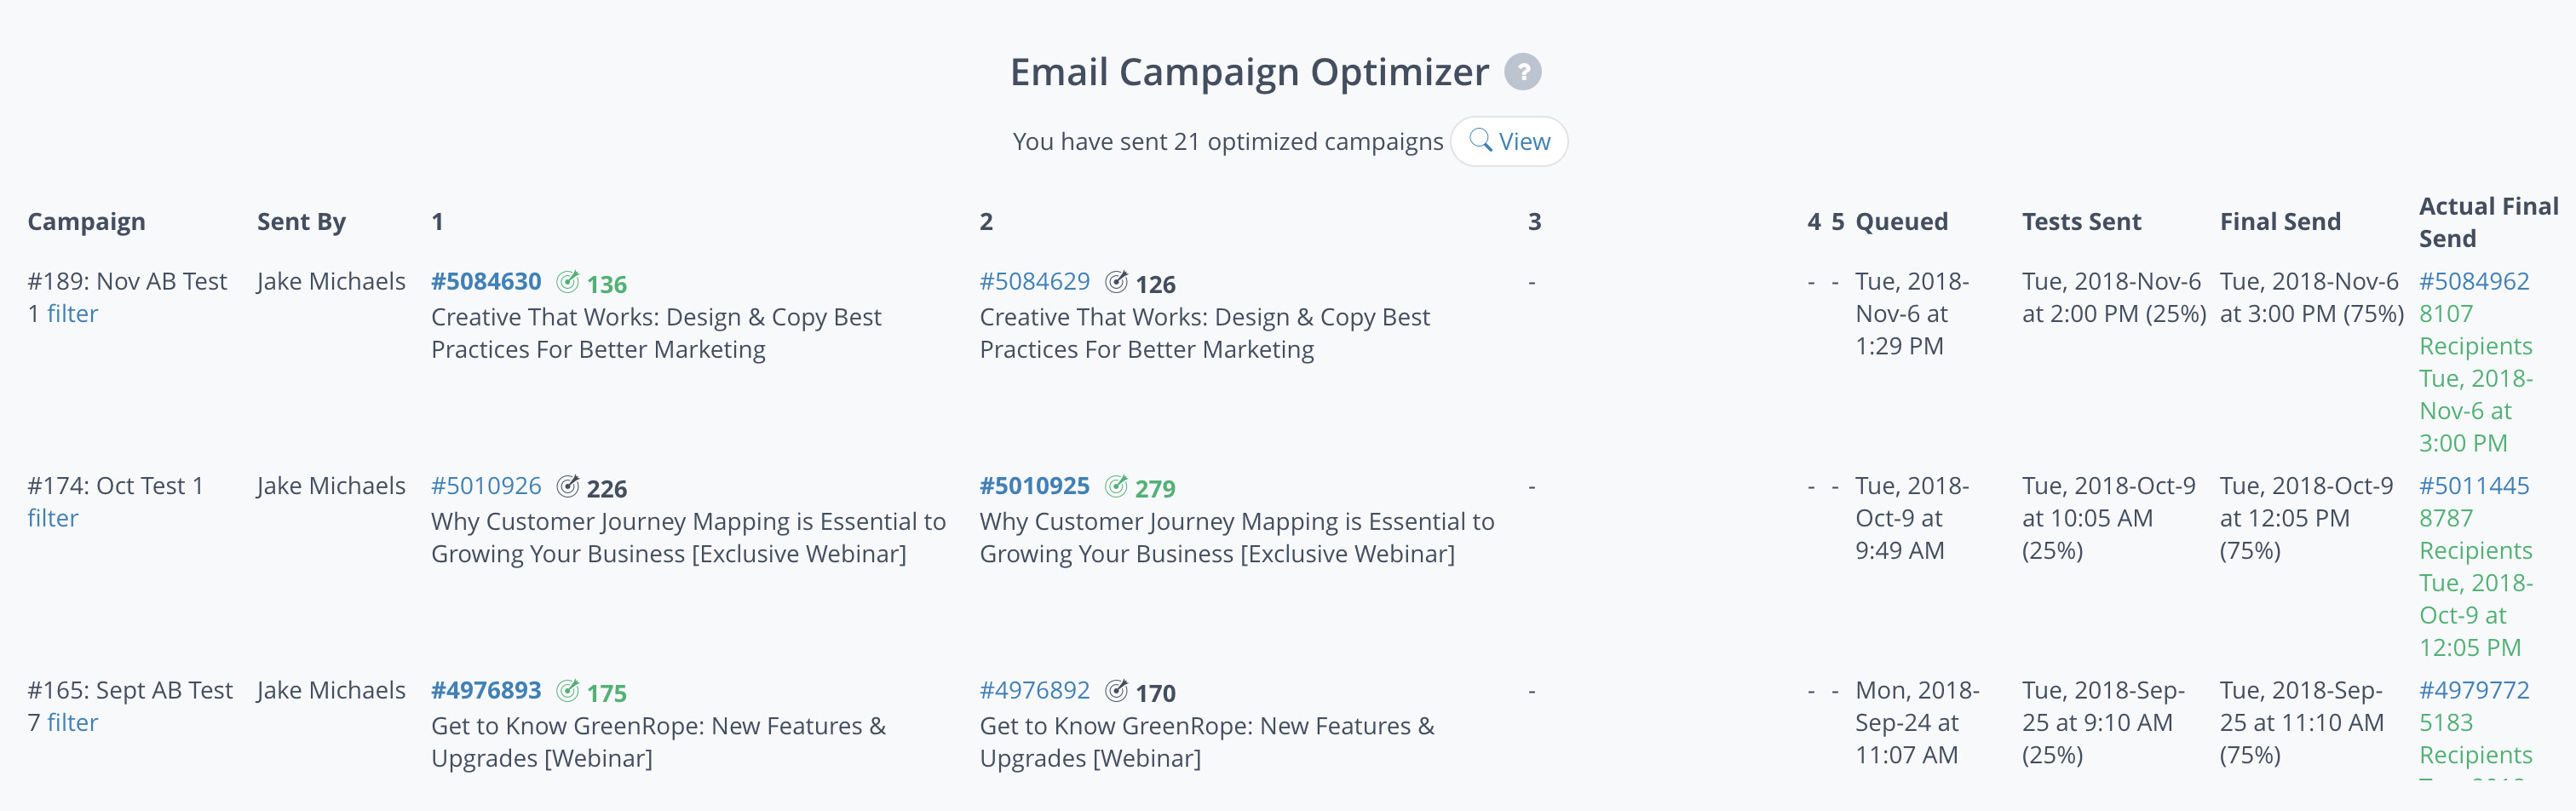 Campaign Optimizer